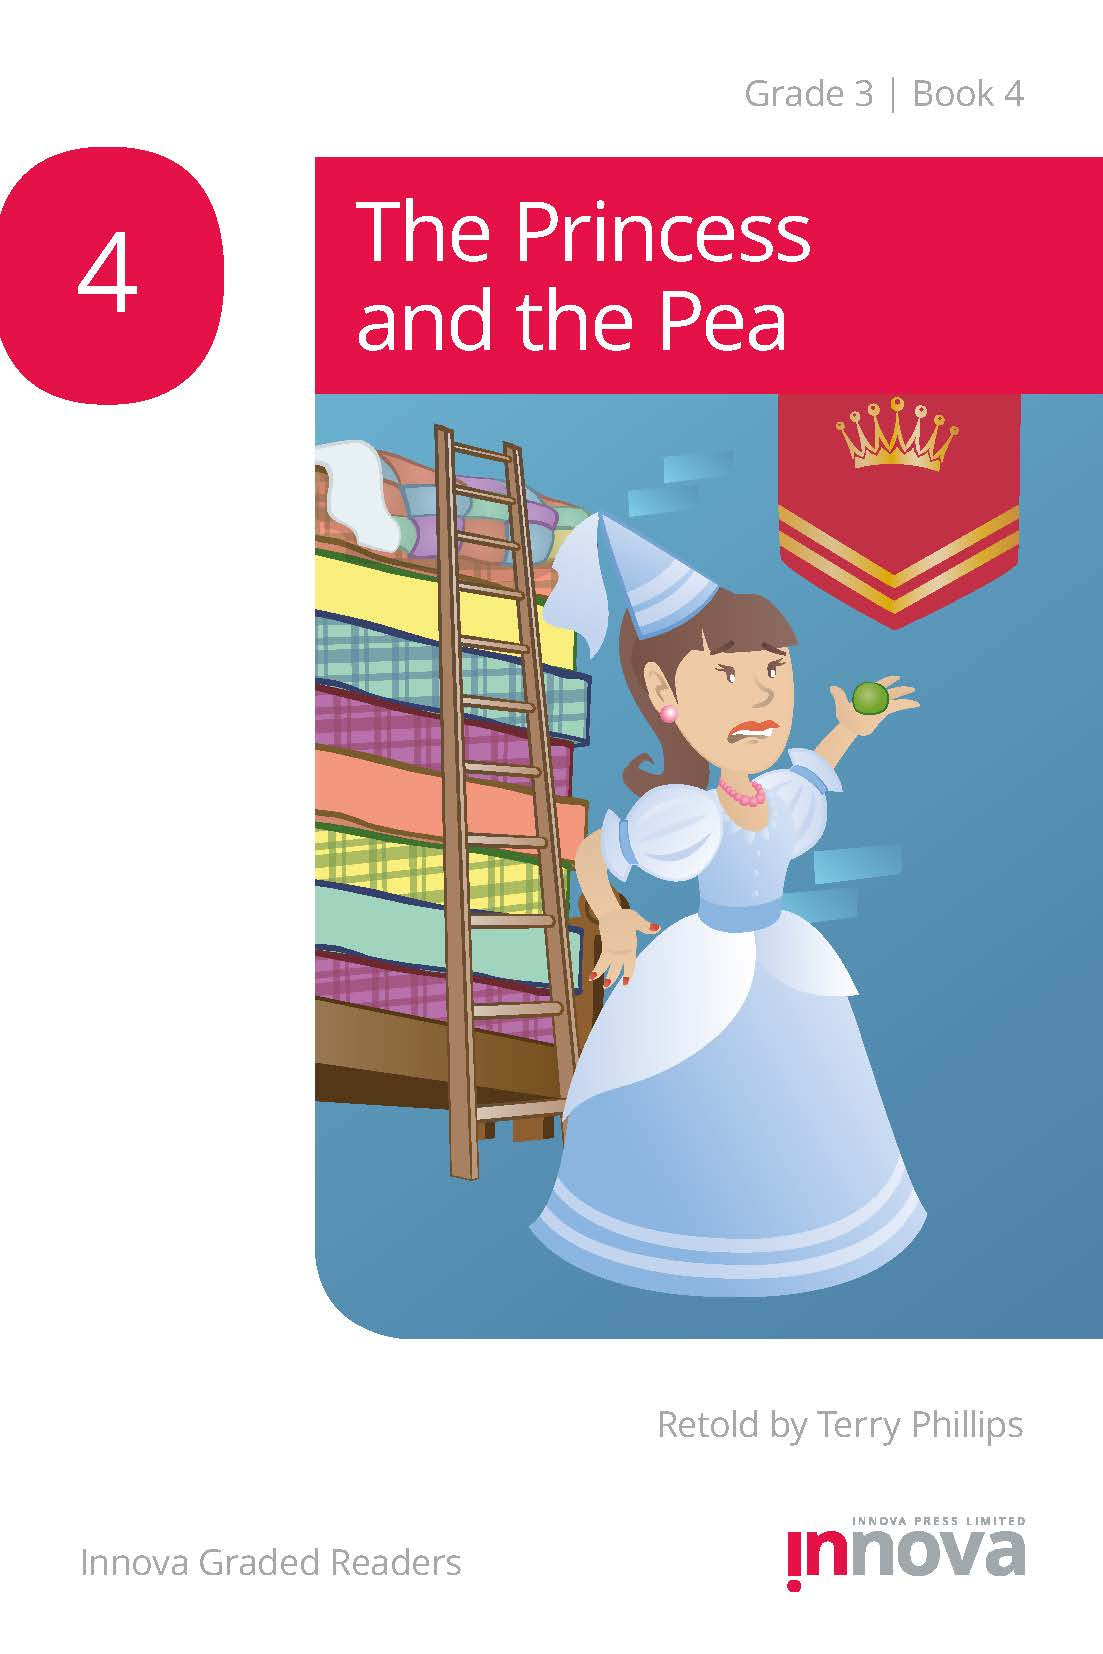 Innova Press The Princess and the Pea cover, a girl in a blue dress and cone hat holds up a green pea